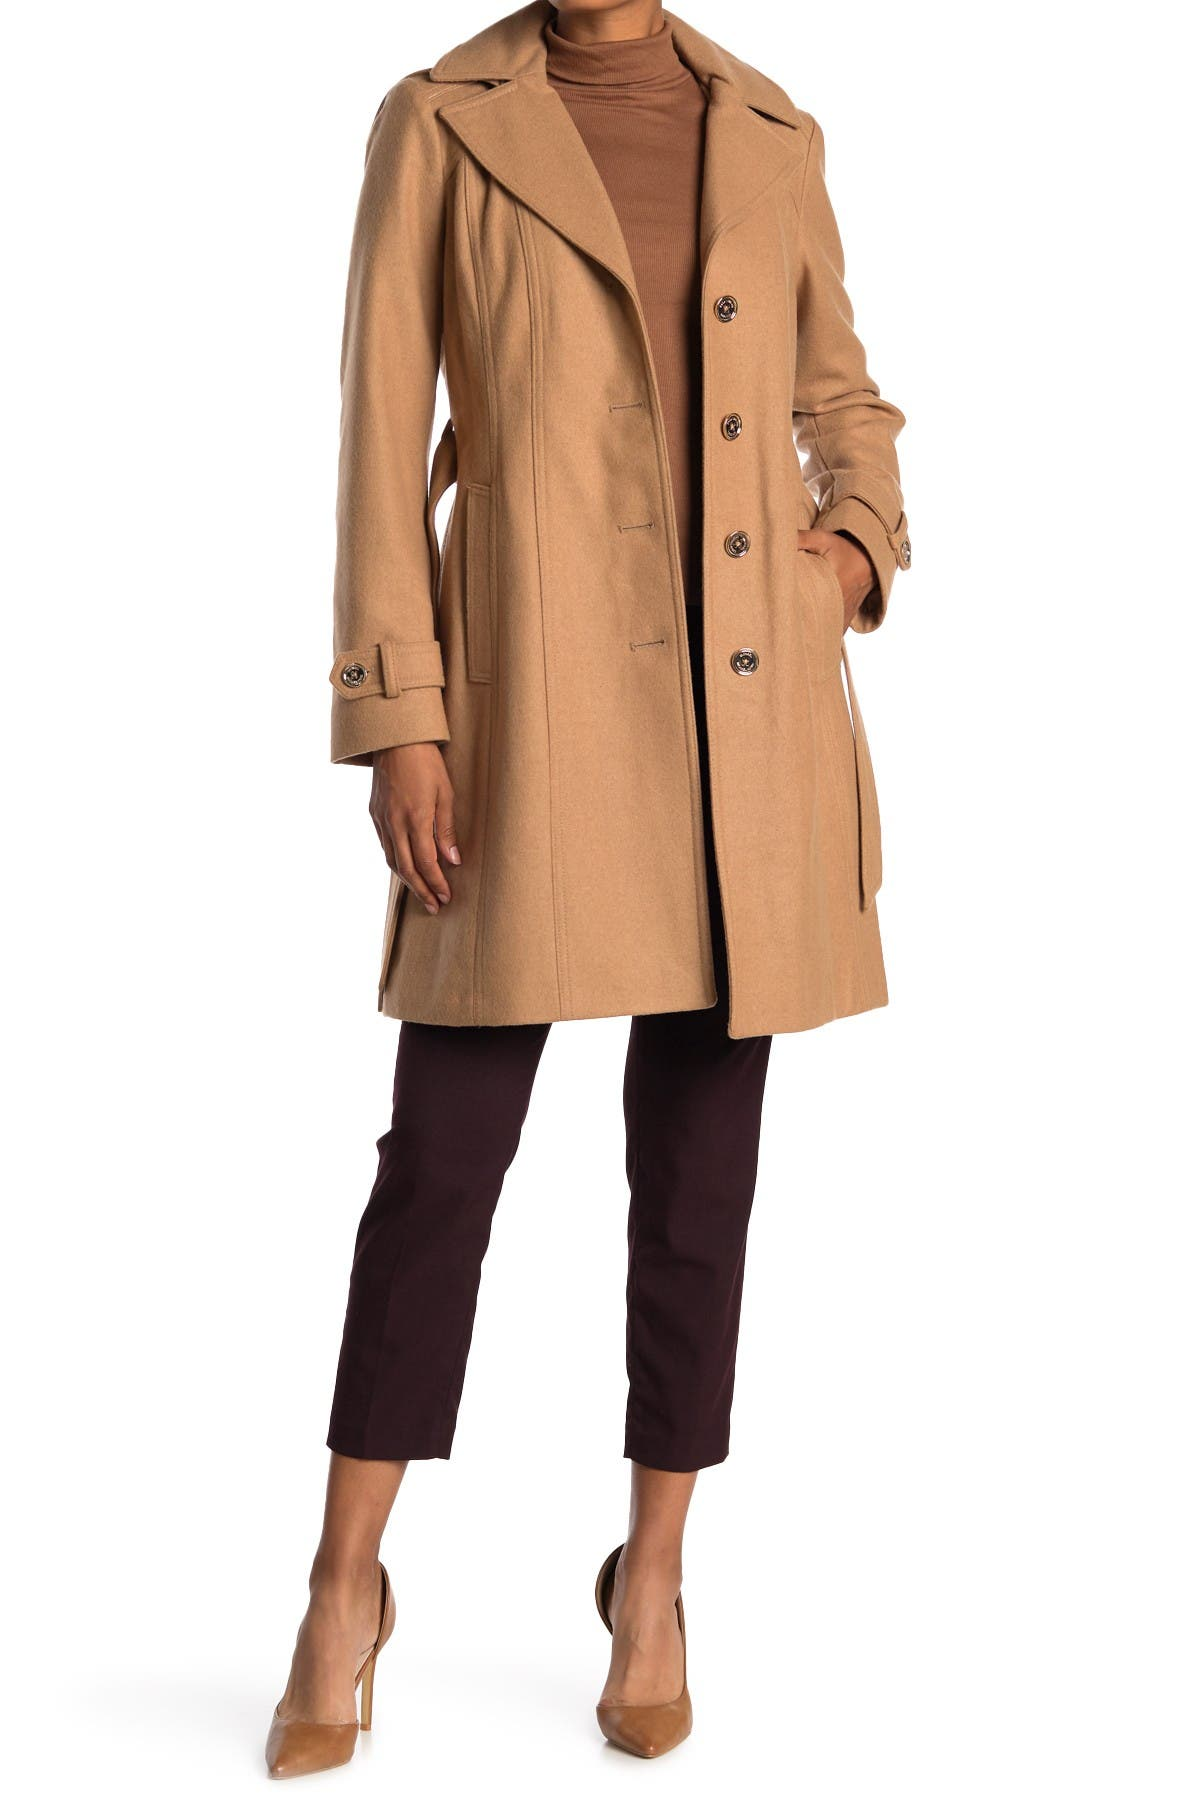 Image of Michael Kors Missy Belted Wool Blend Trench Coat